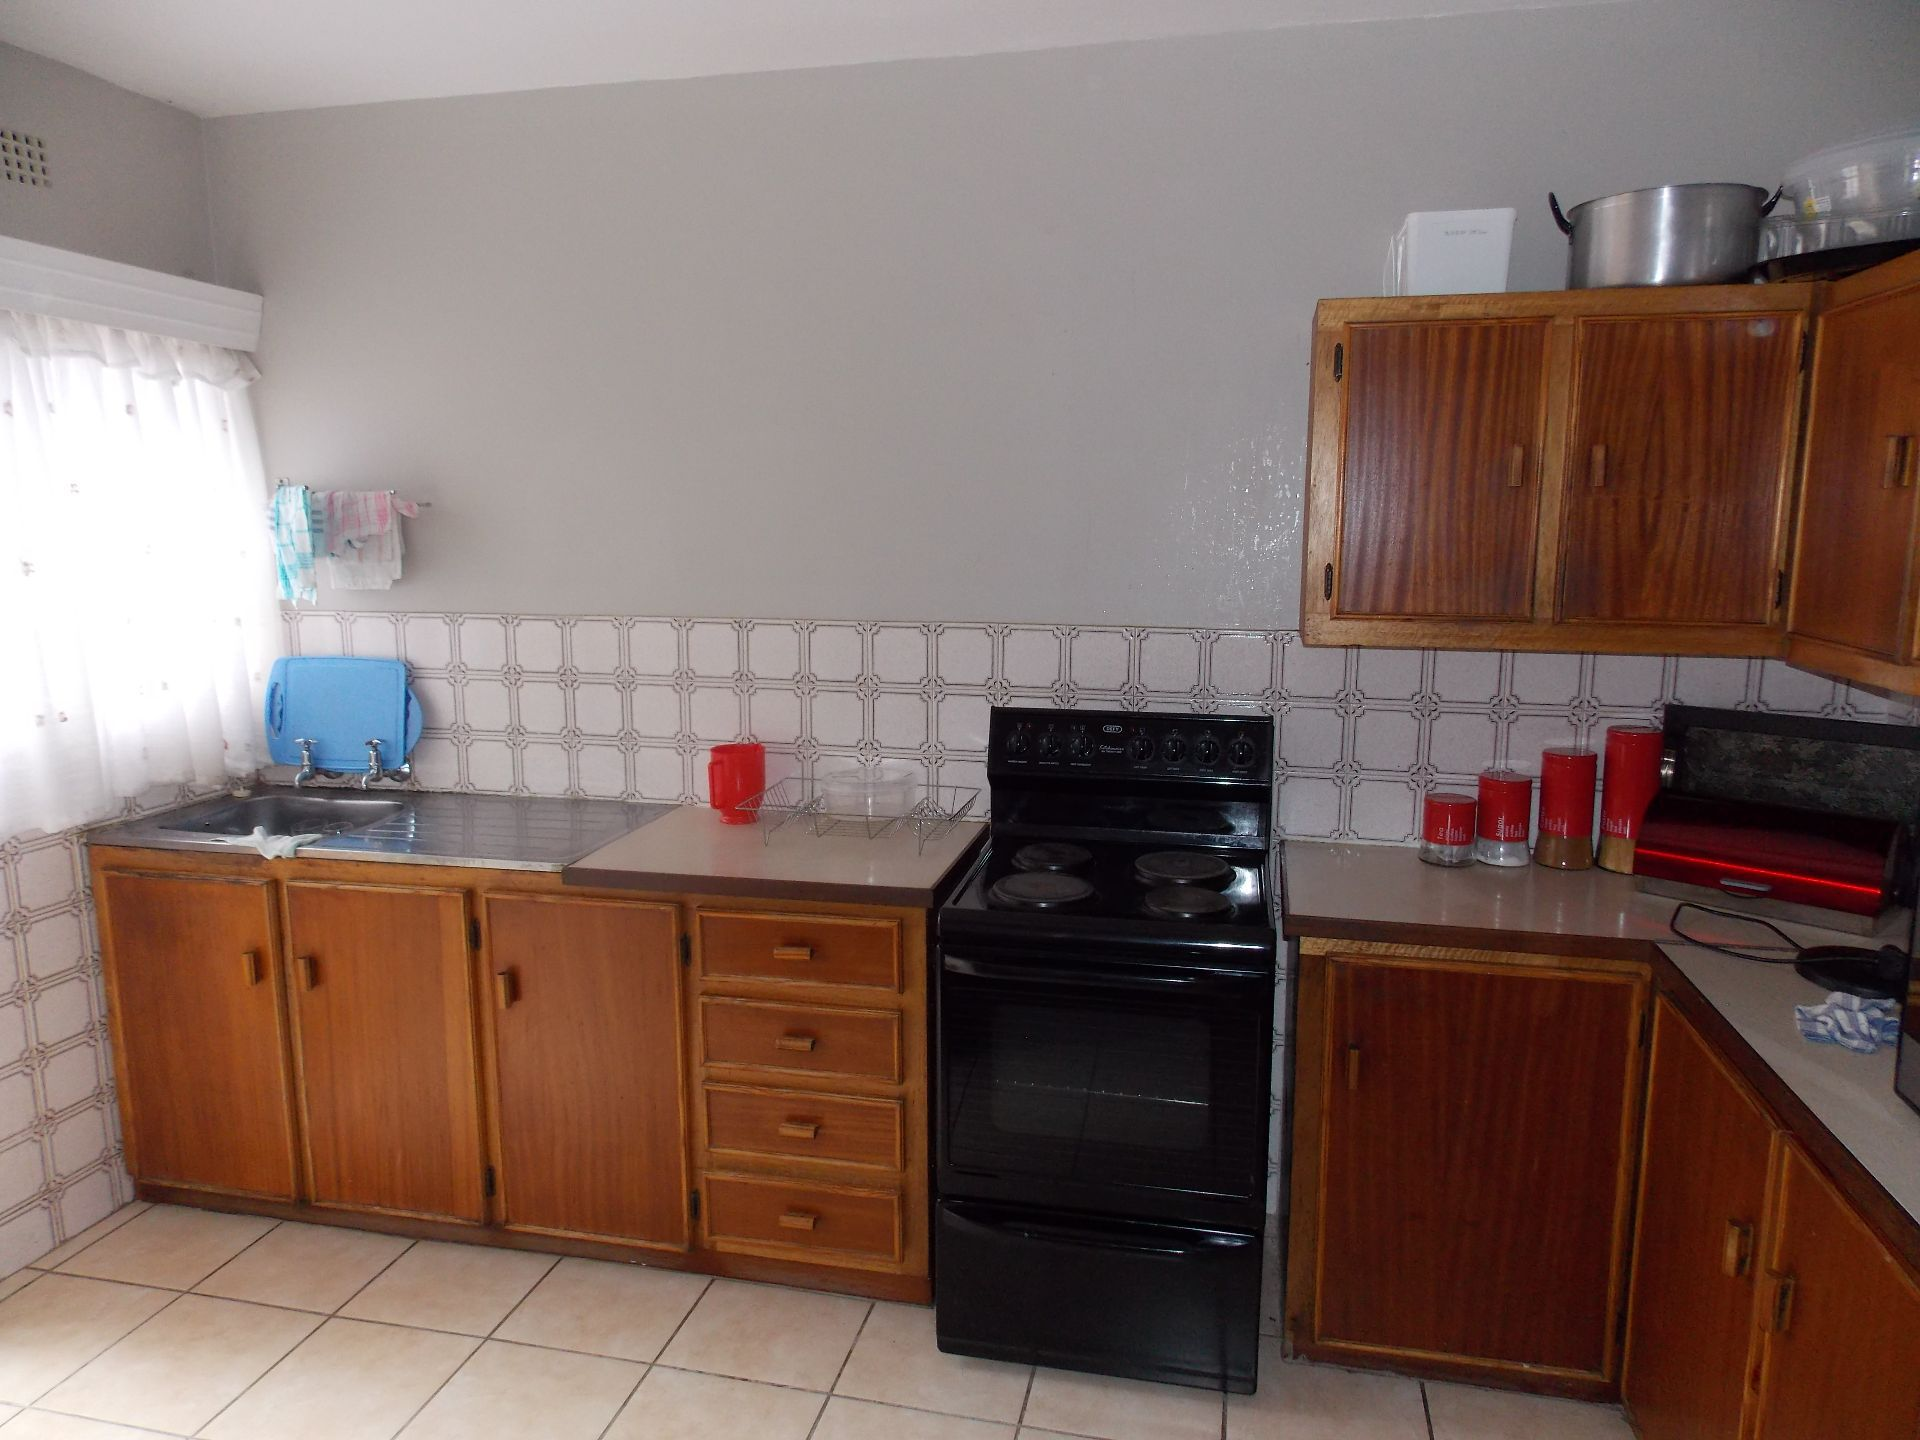 Potchefstroom Central property for sale. Ref No: 13414401. Picture no 4